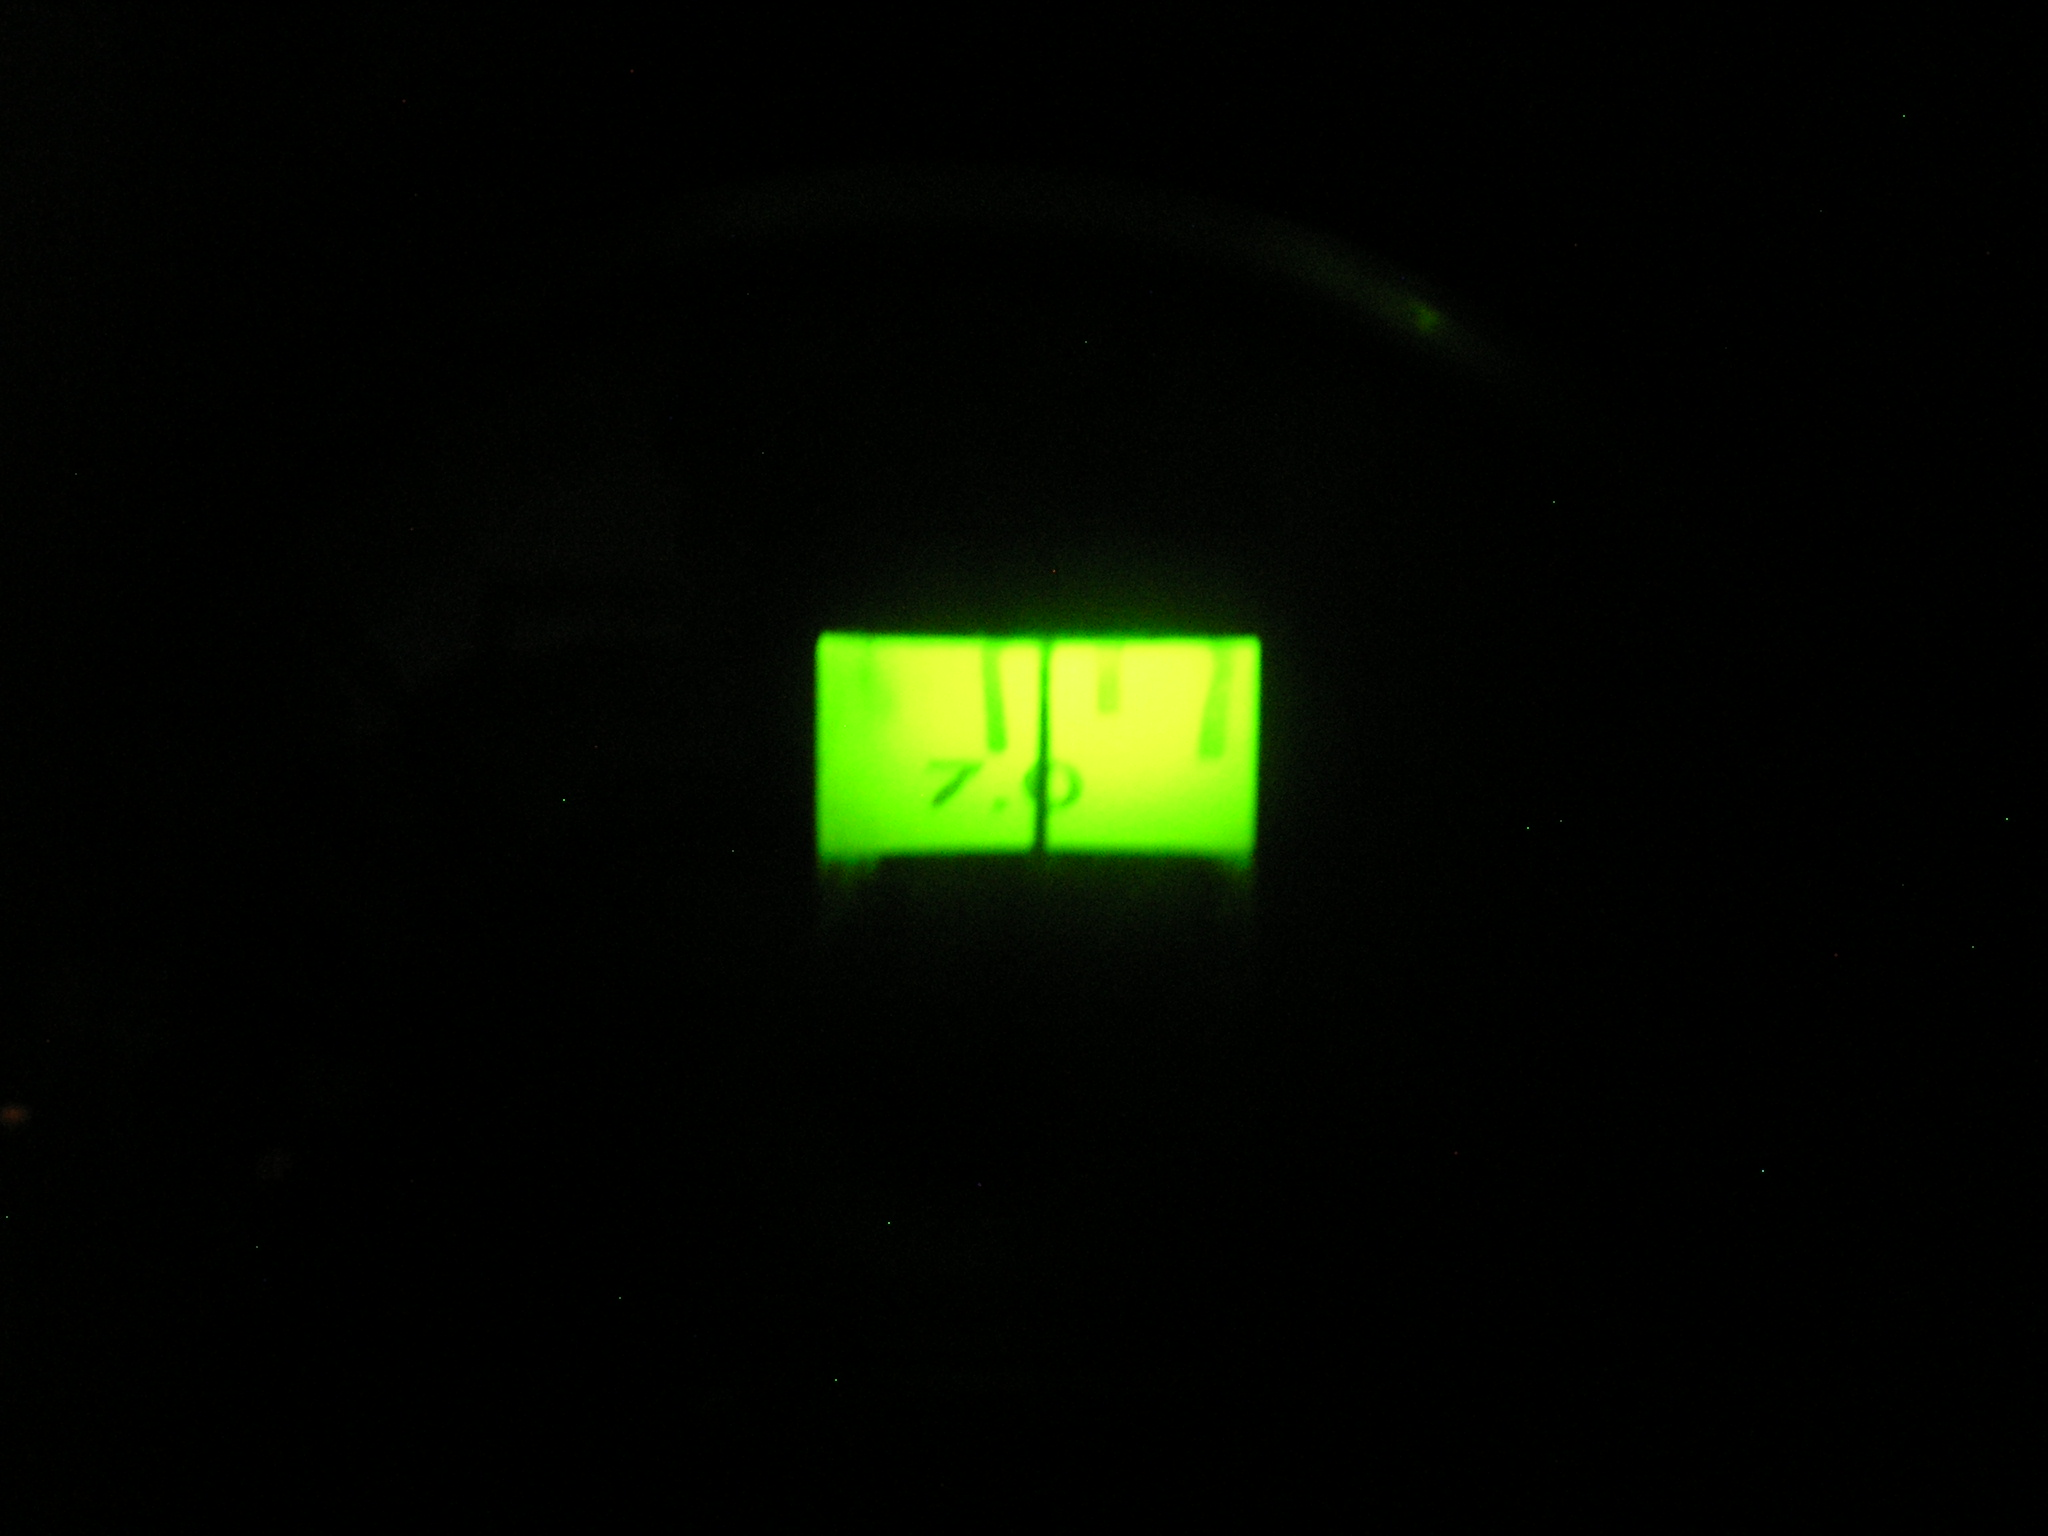 Receiver dial with LED illumination